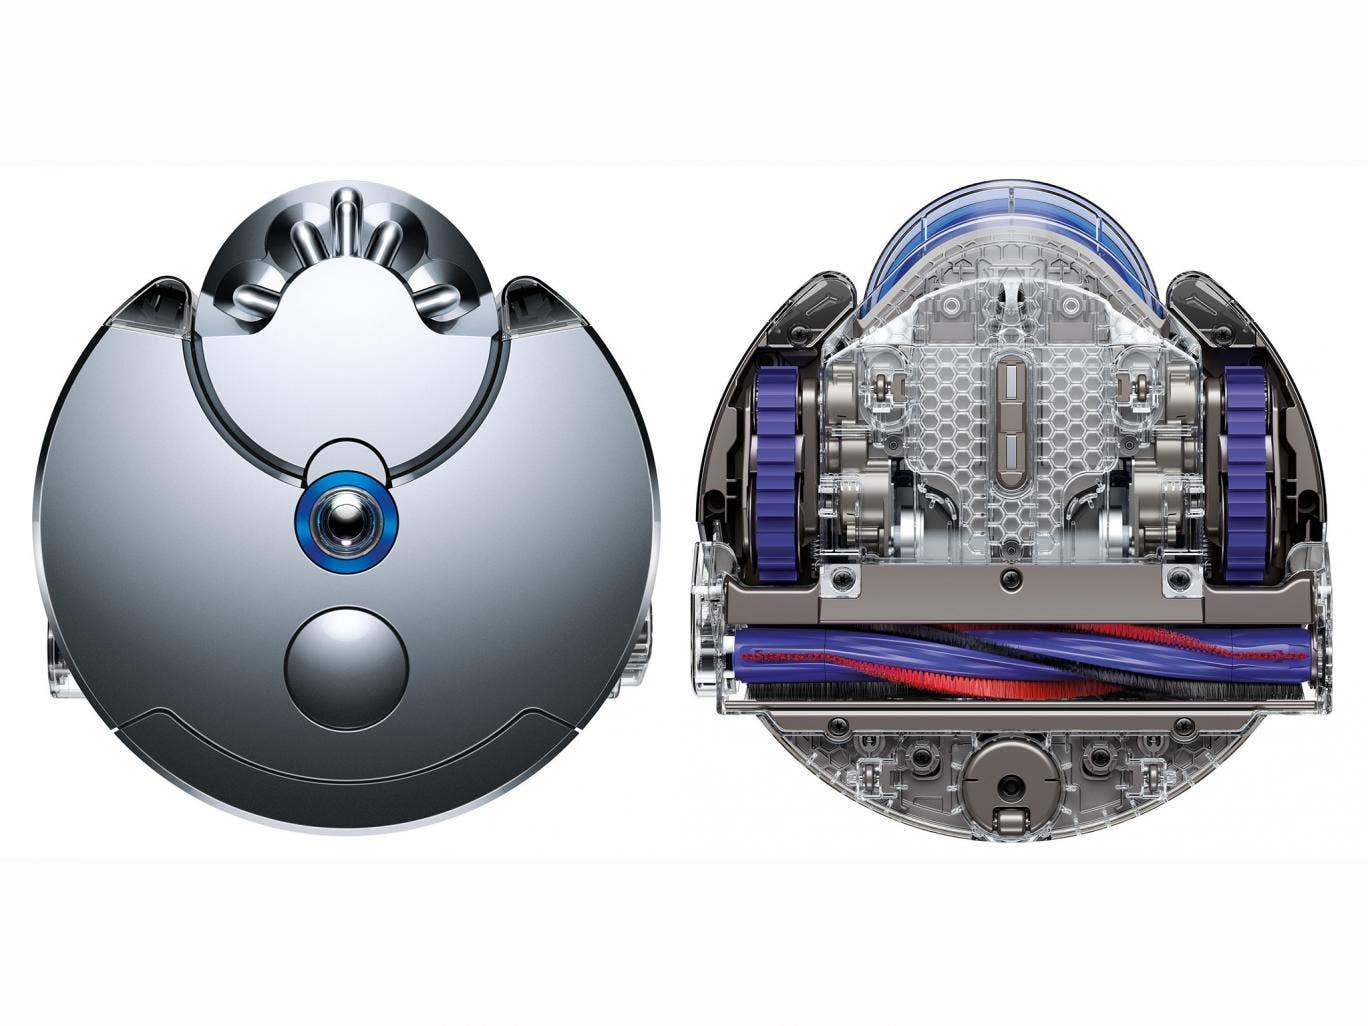 The Dyson 360 Eye, the first robotic vacuum cleaner that owners can control via an app